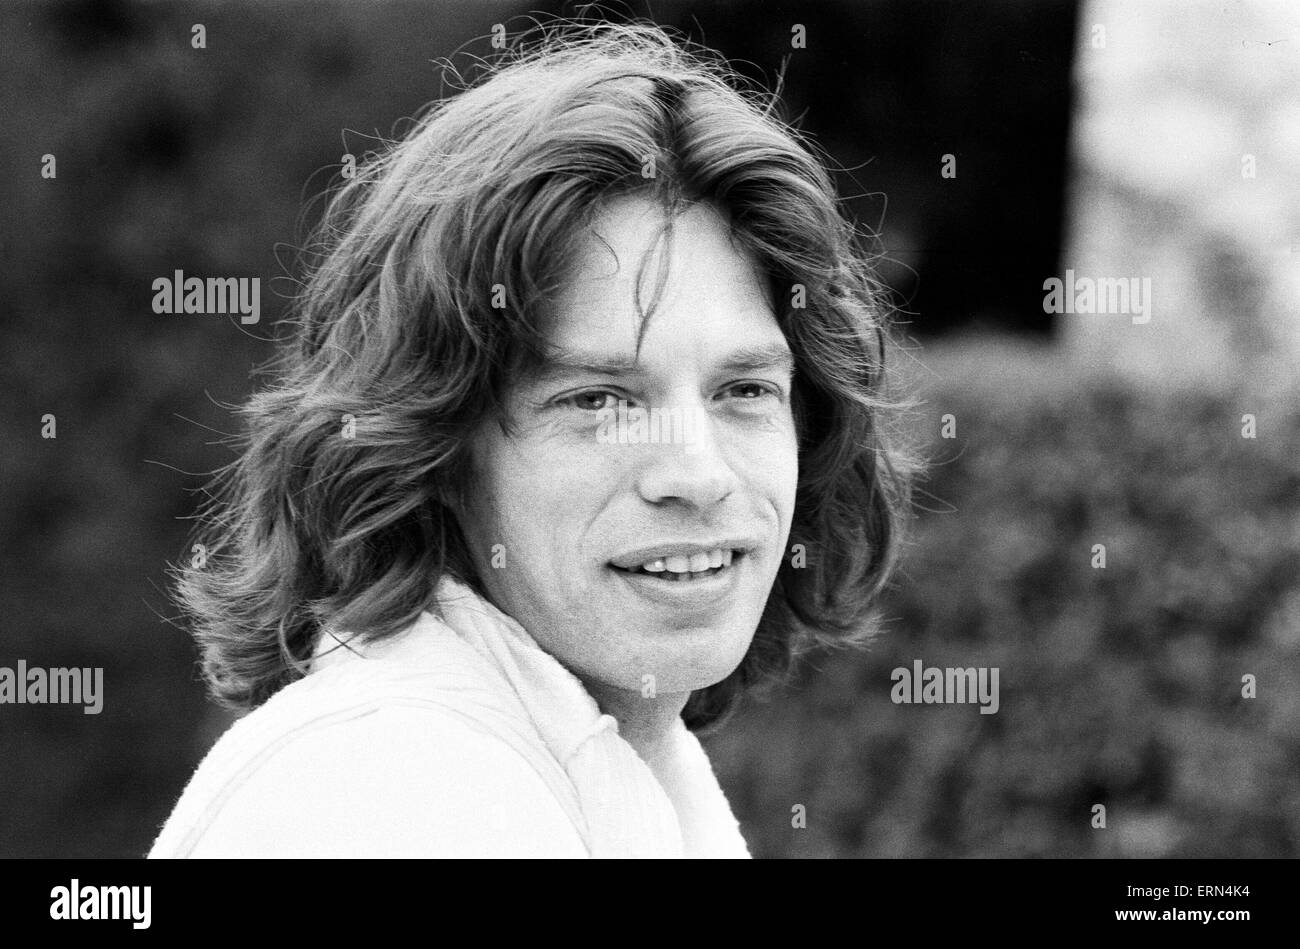 Mick Jagger takes time out to relax in the South of France by playing tennis with fellow band member Ronnie Wood - Stock Image